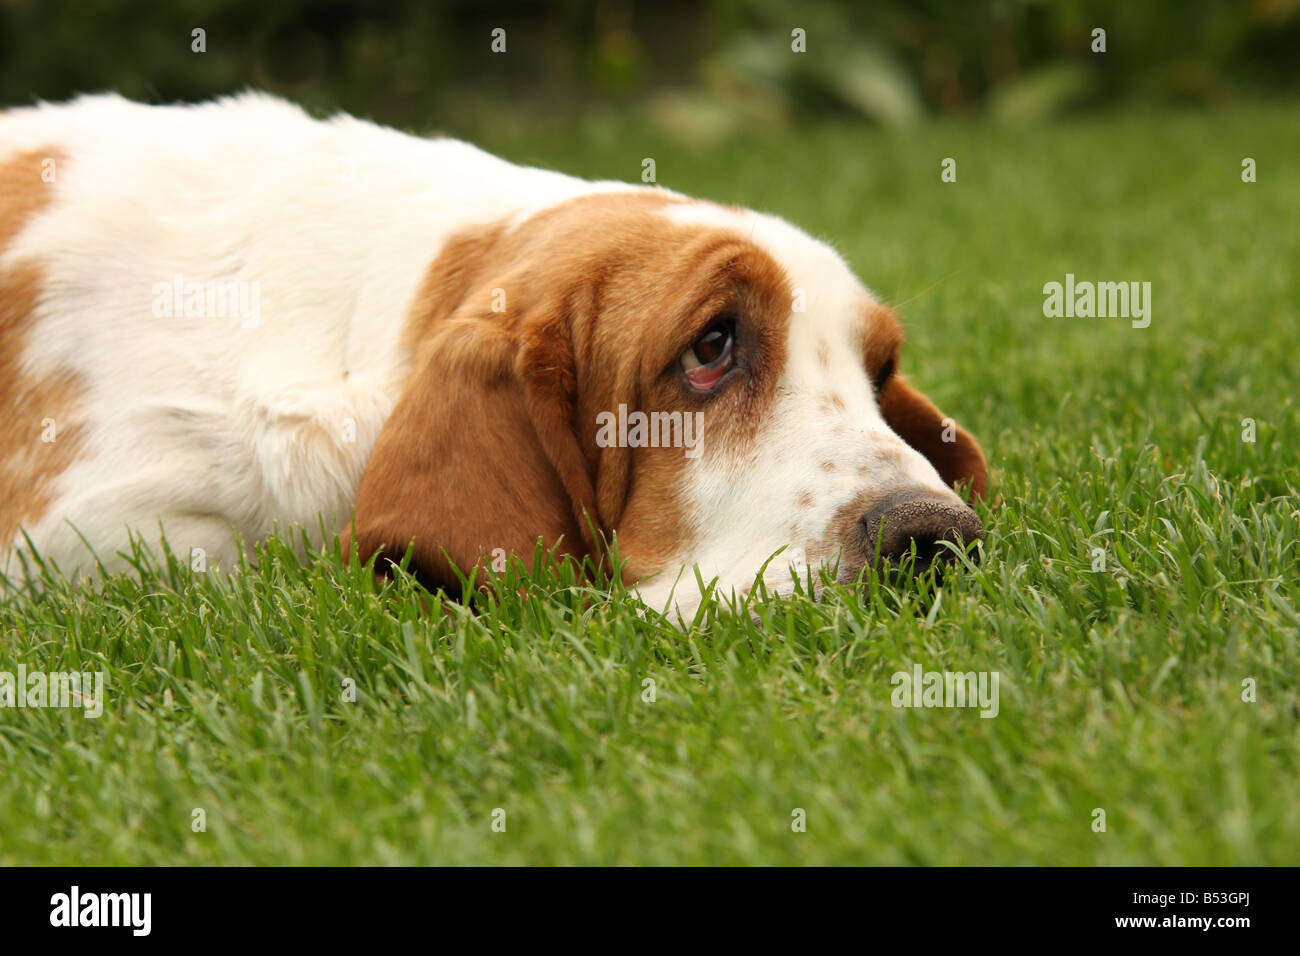 Basset hound relaxing on grass - Stock Image